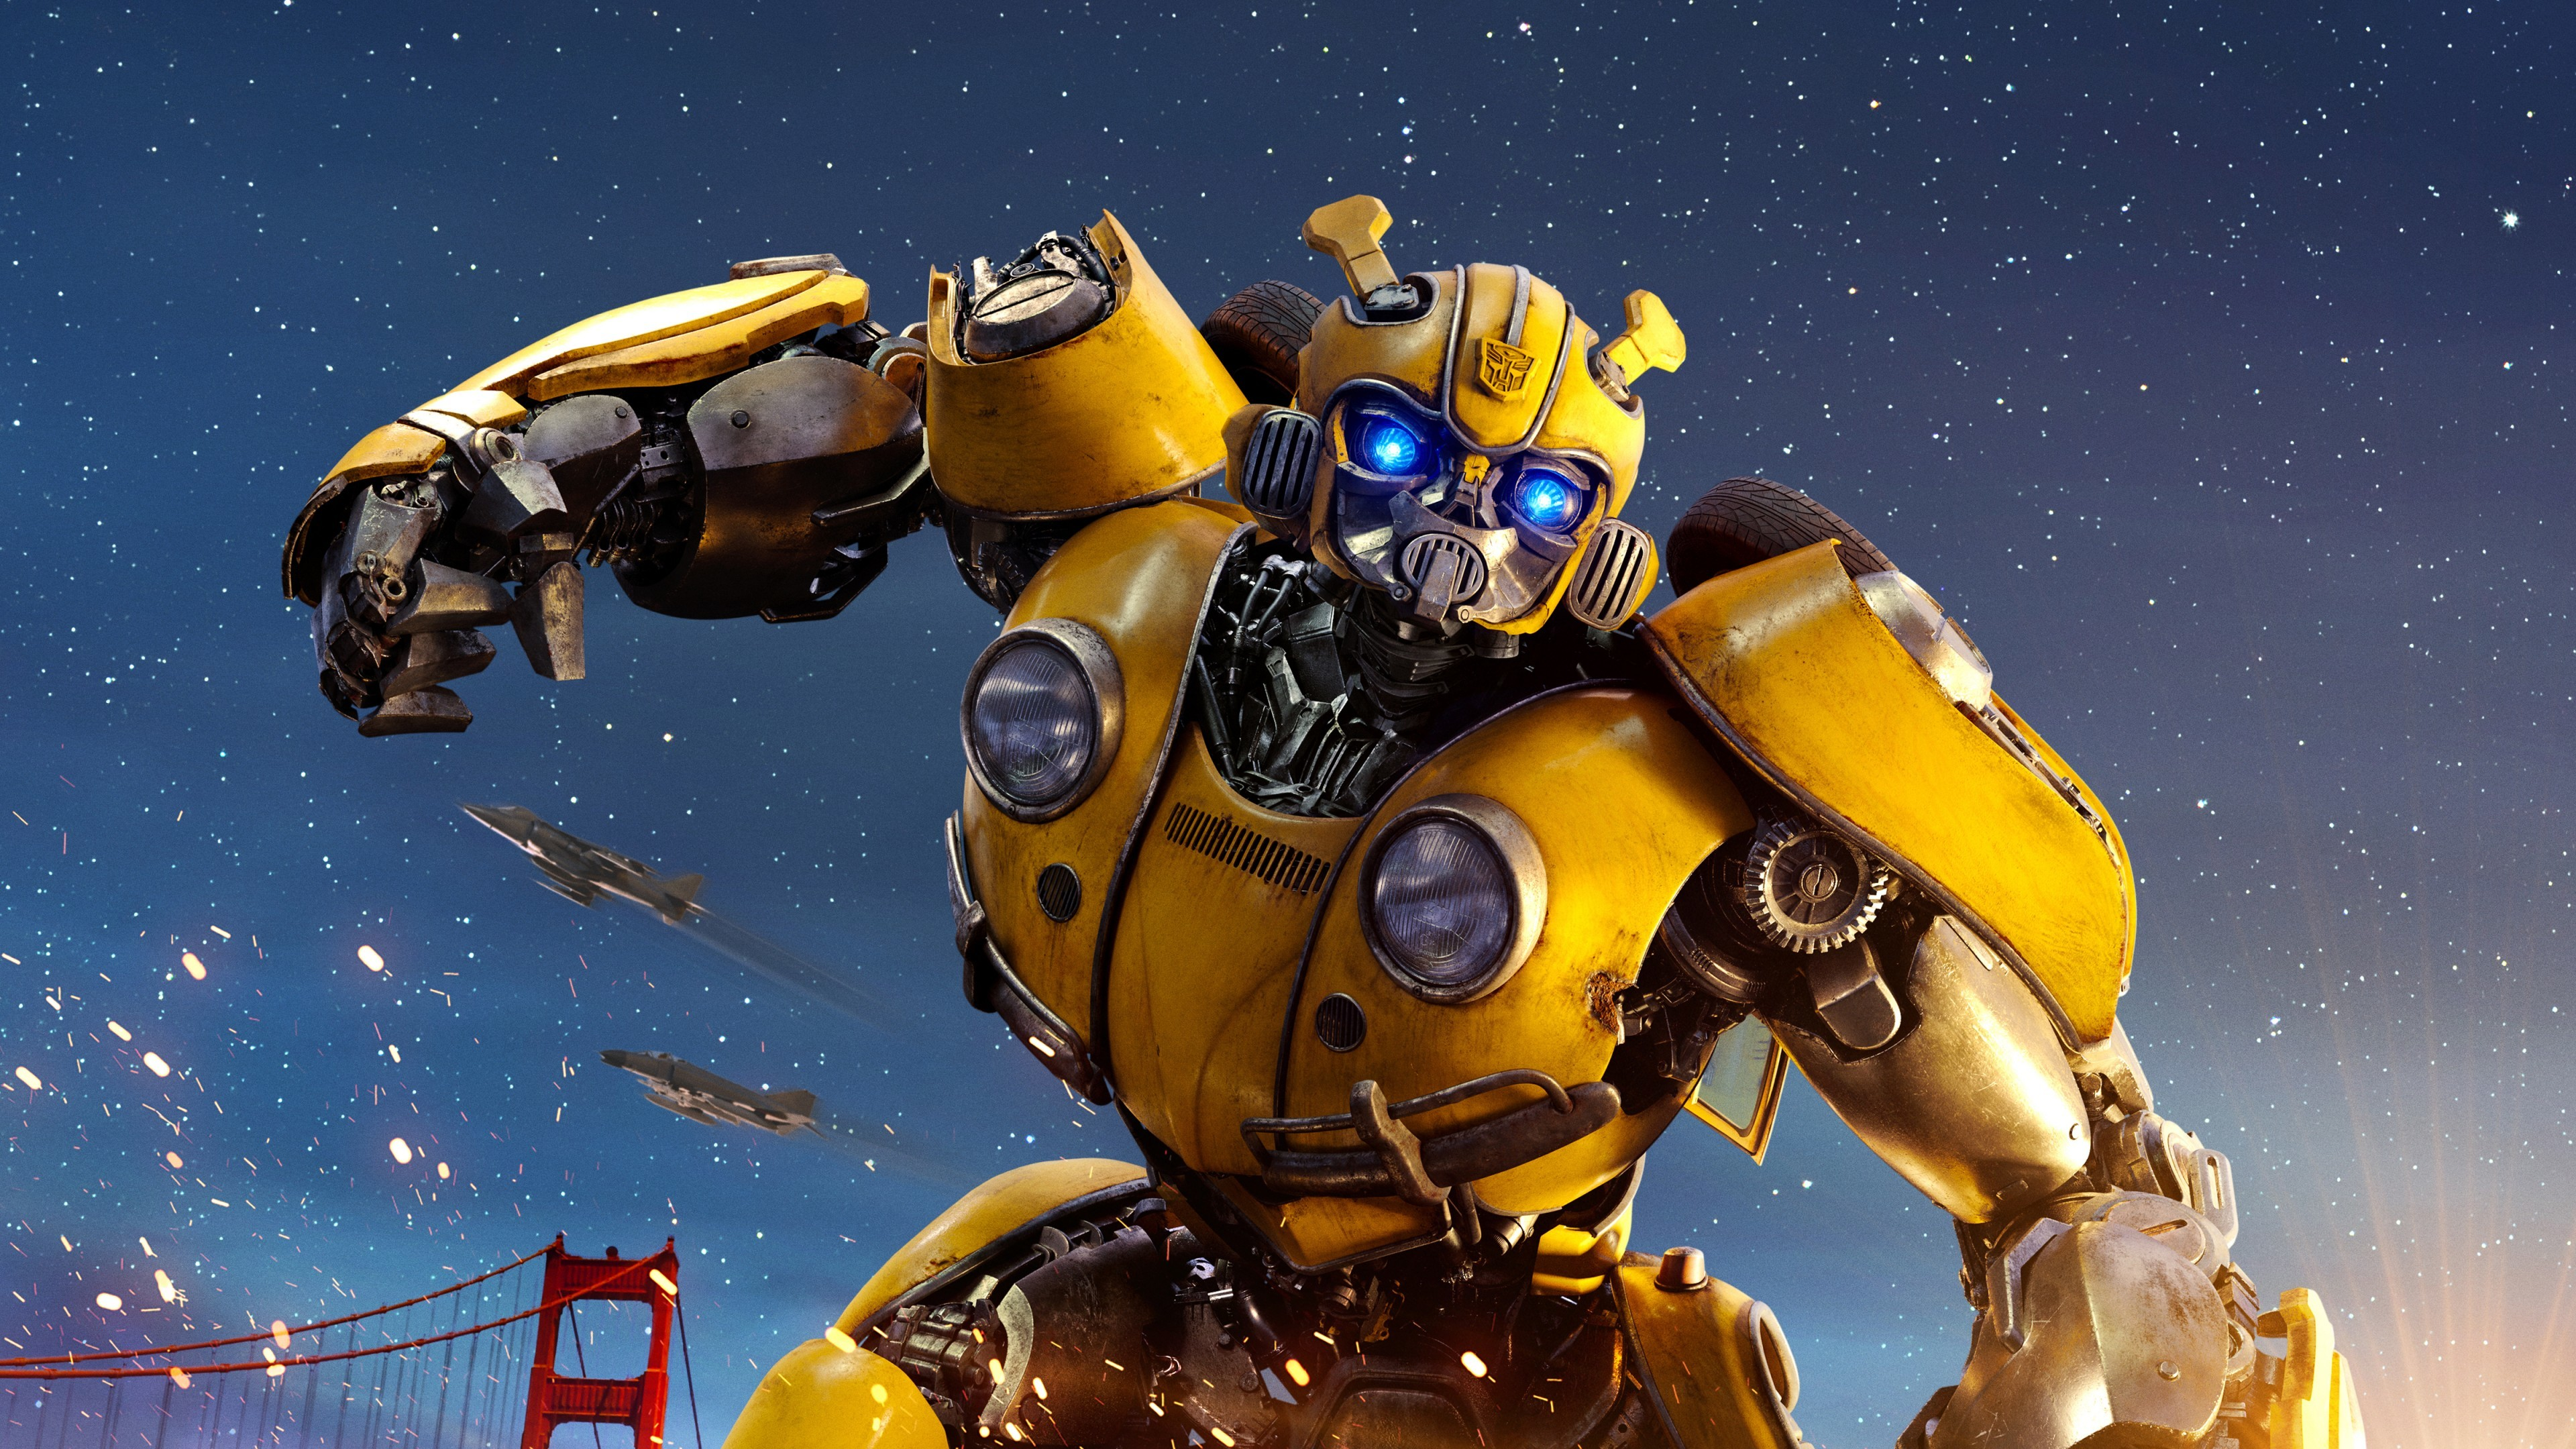 Fall Of Cybertron Wallpaper Transformers 2 Bumblebee Wallpaper 61 Images